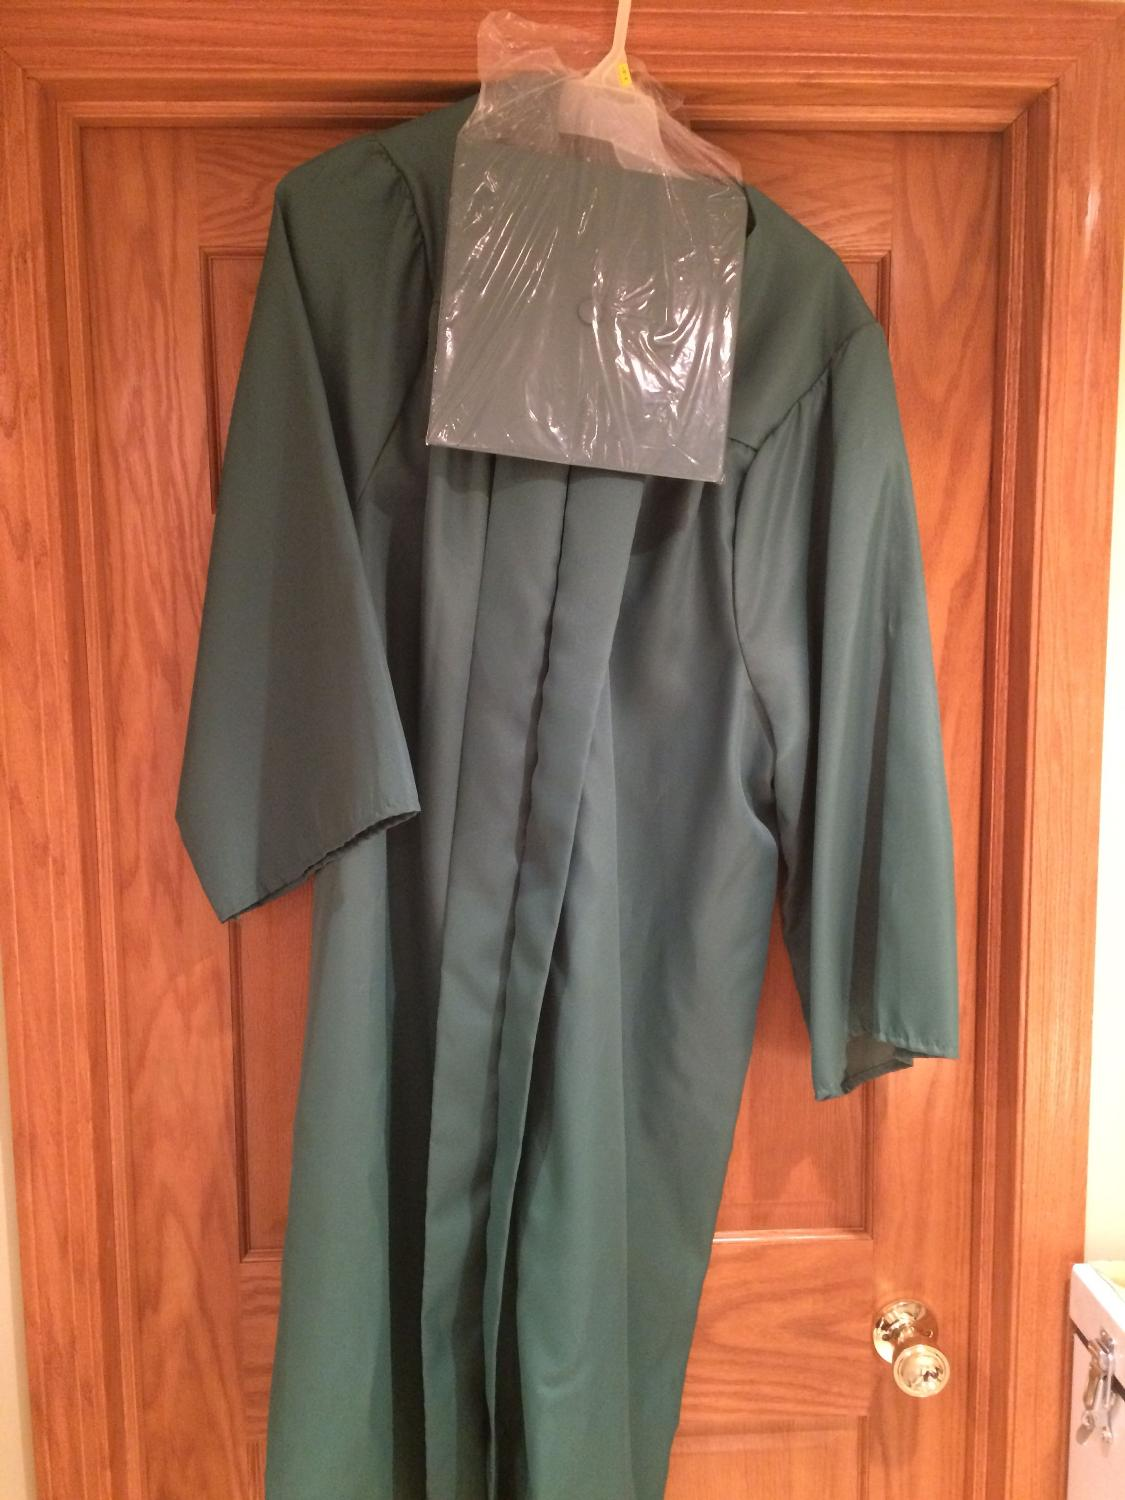 Best Jostens Green Cap And Gown For Graduation for sale in Peoria ...